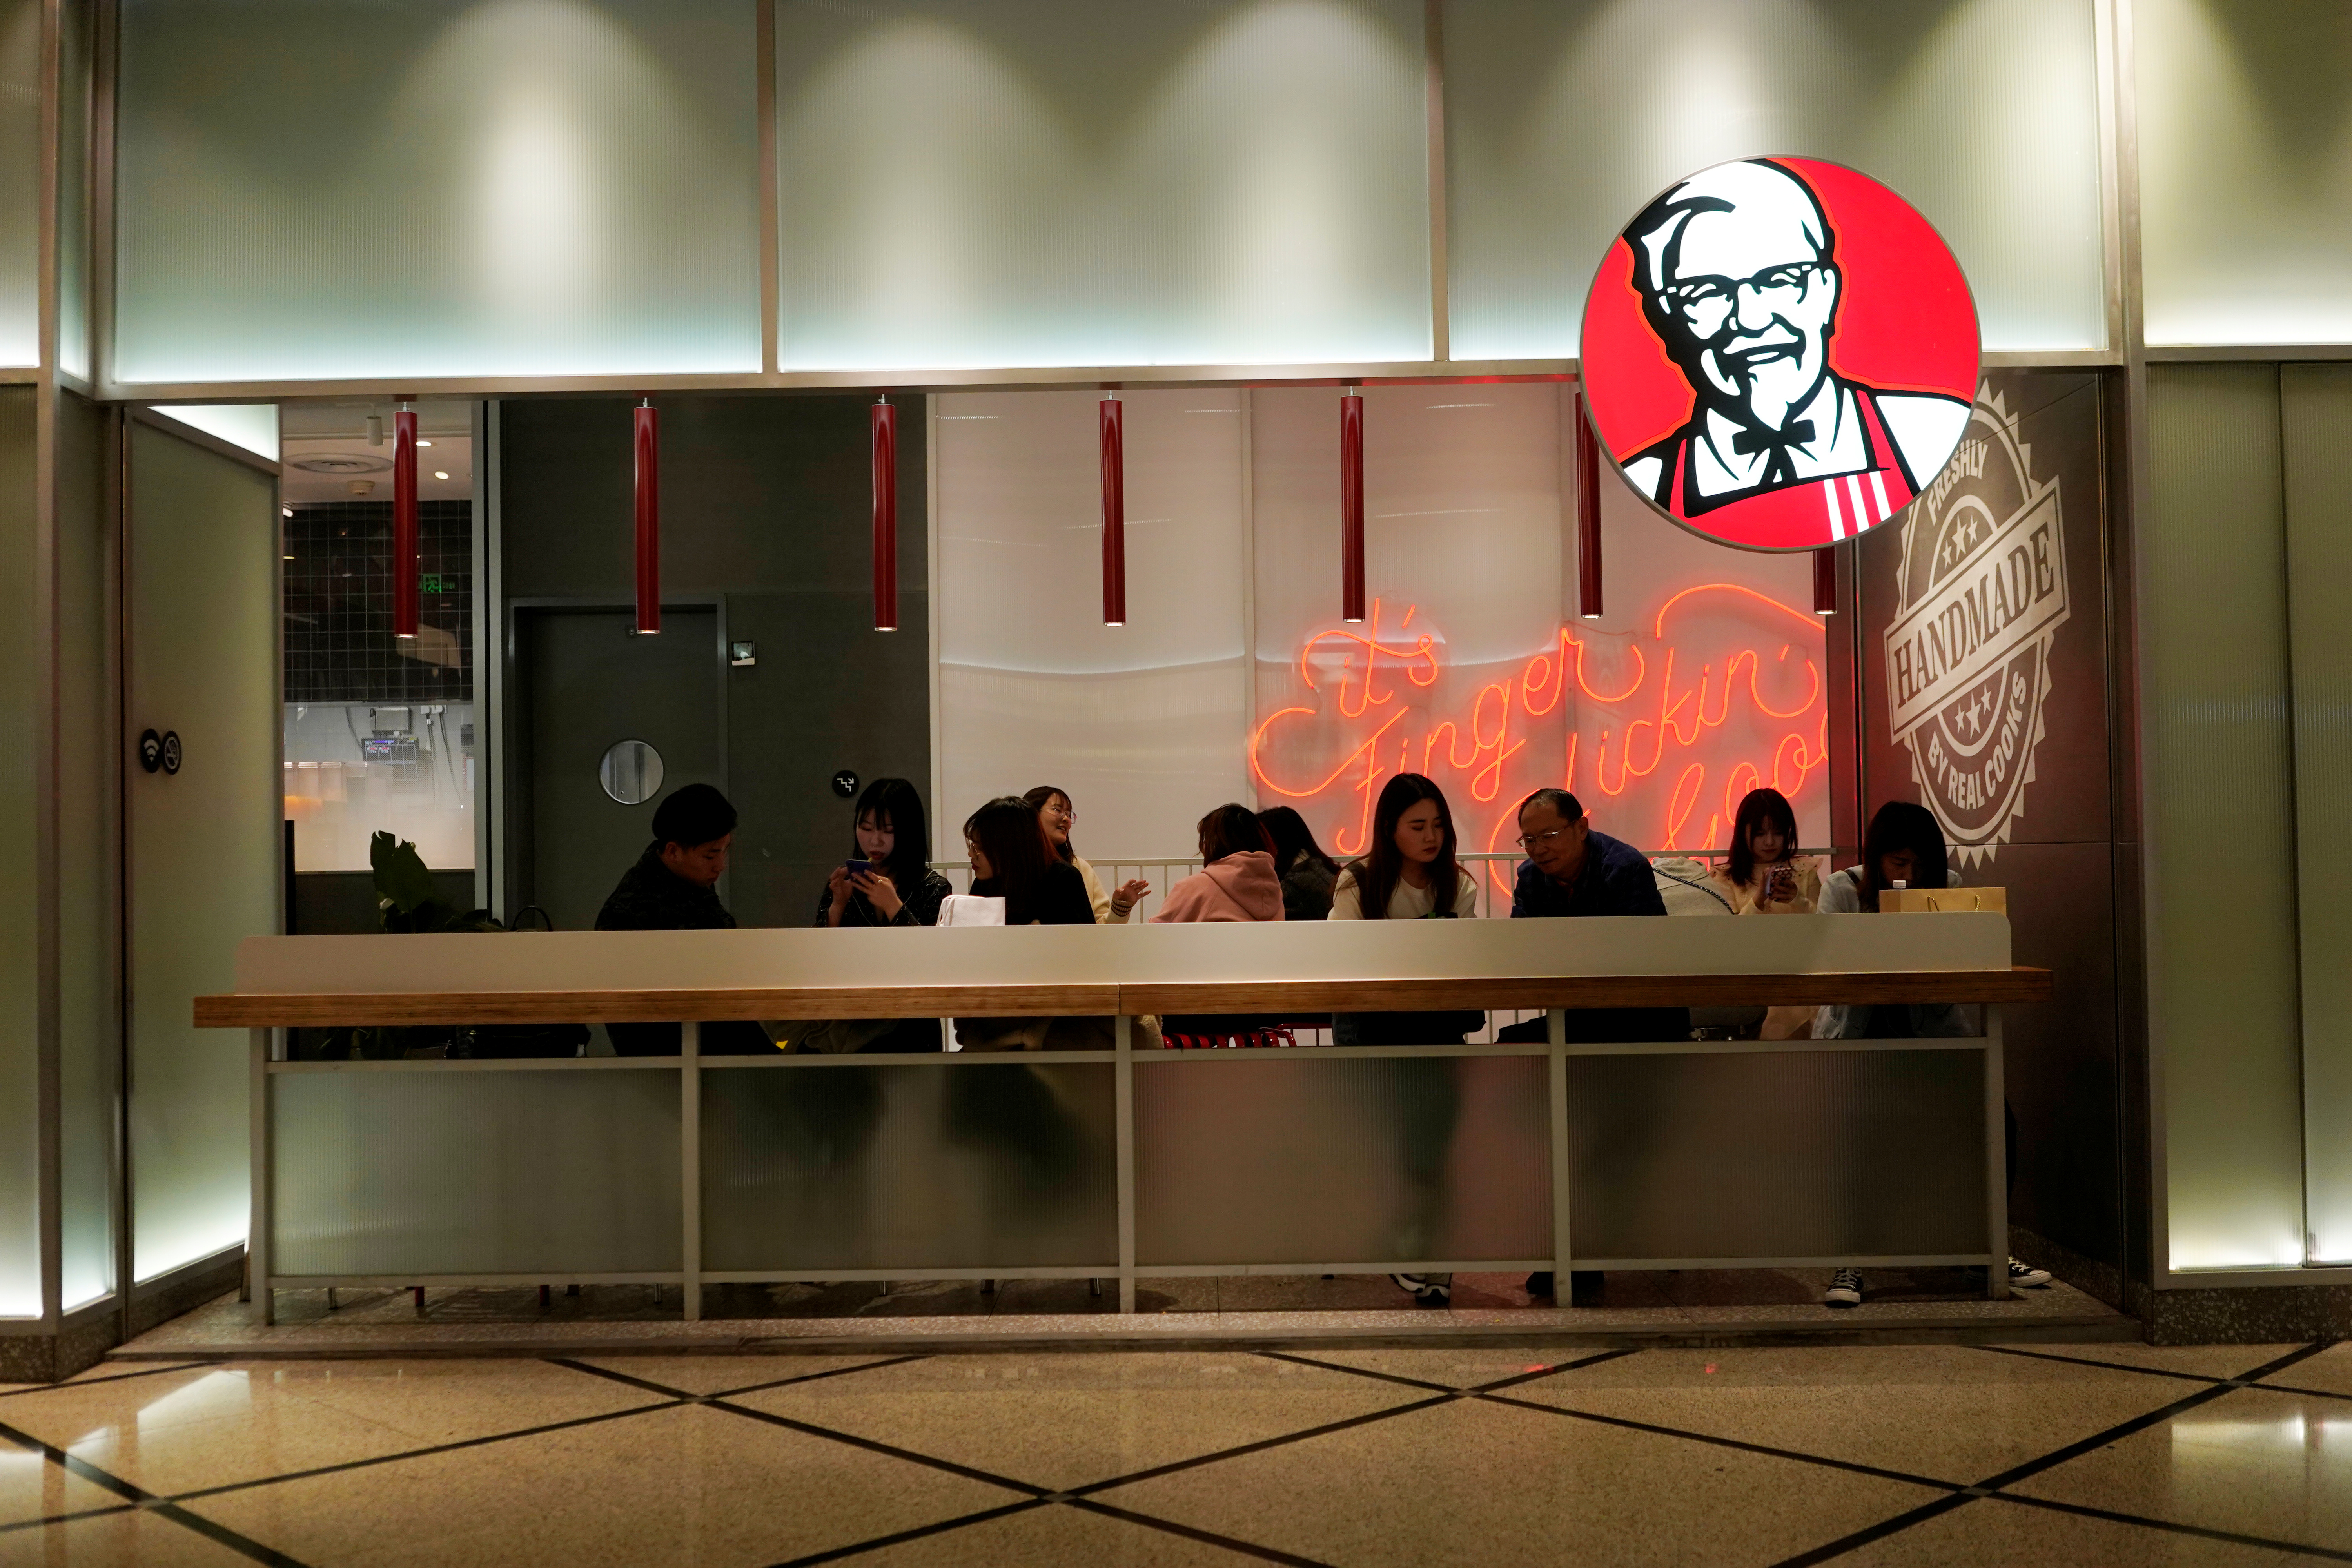 A KFC restaurant is seen in Shanghai, China March 12, 2019. REUTERS/Aly Song